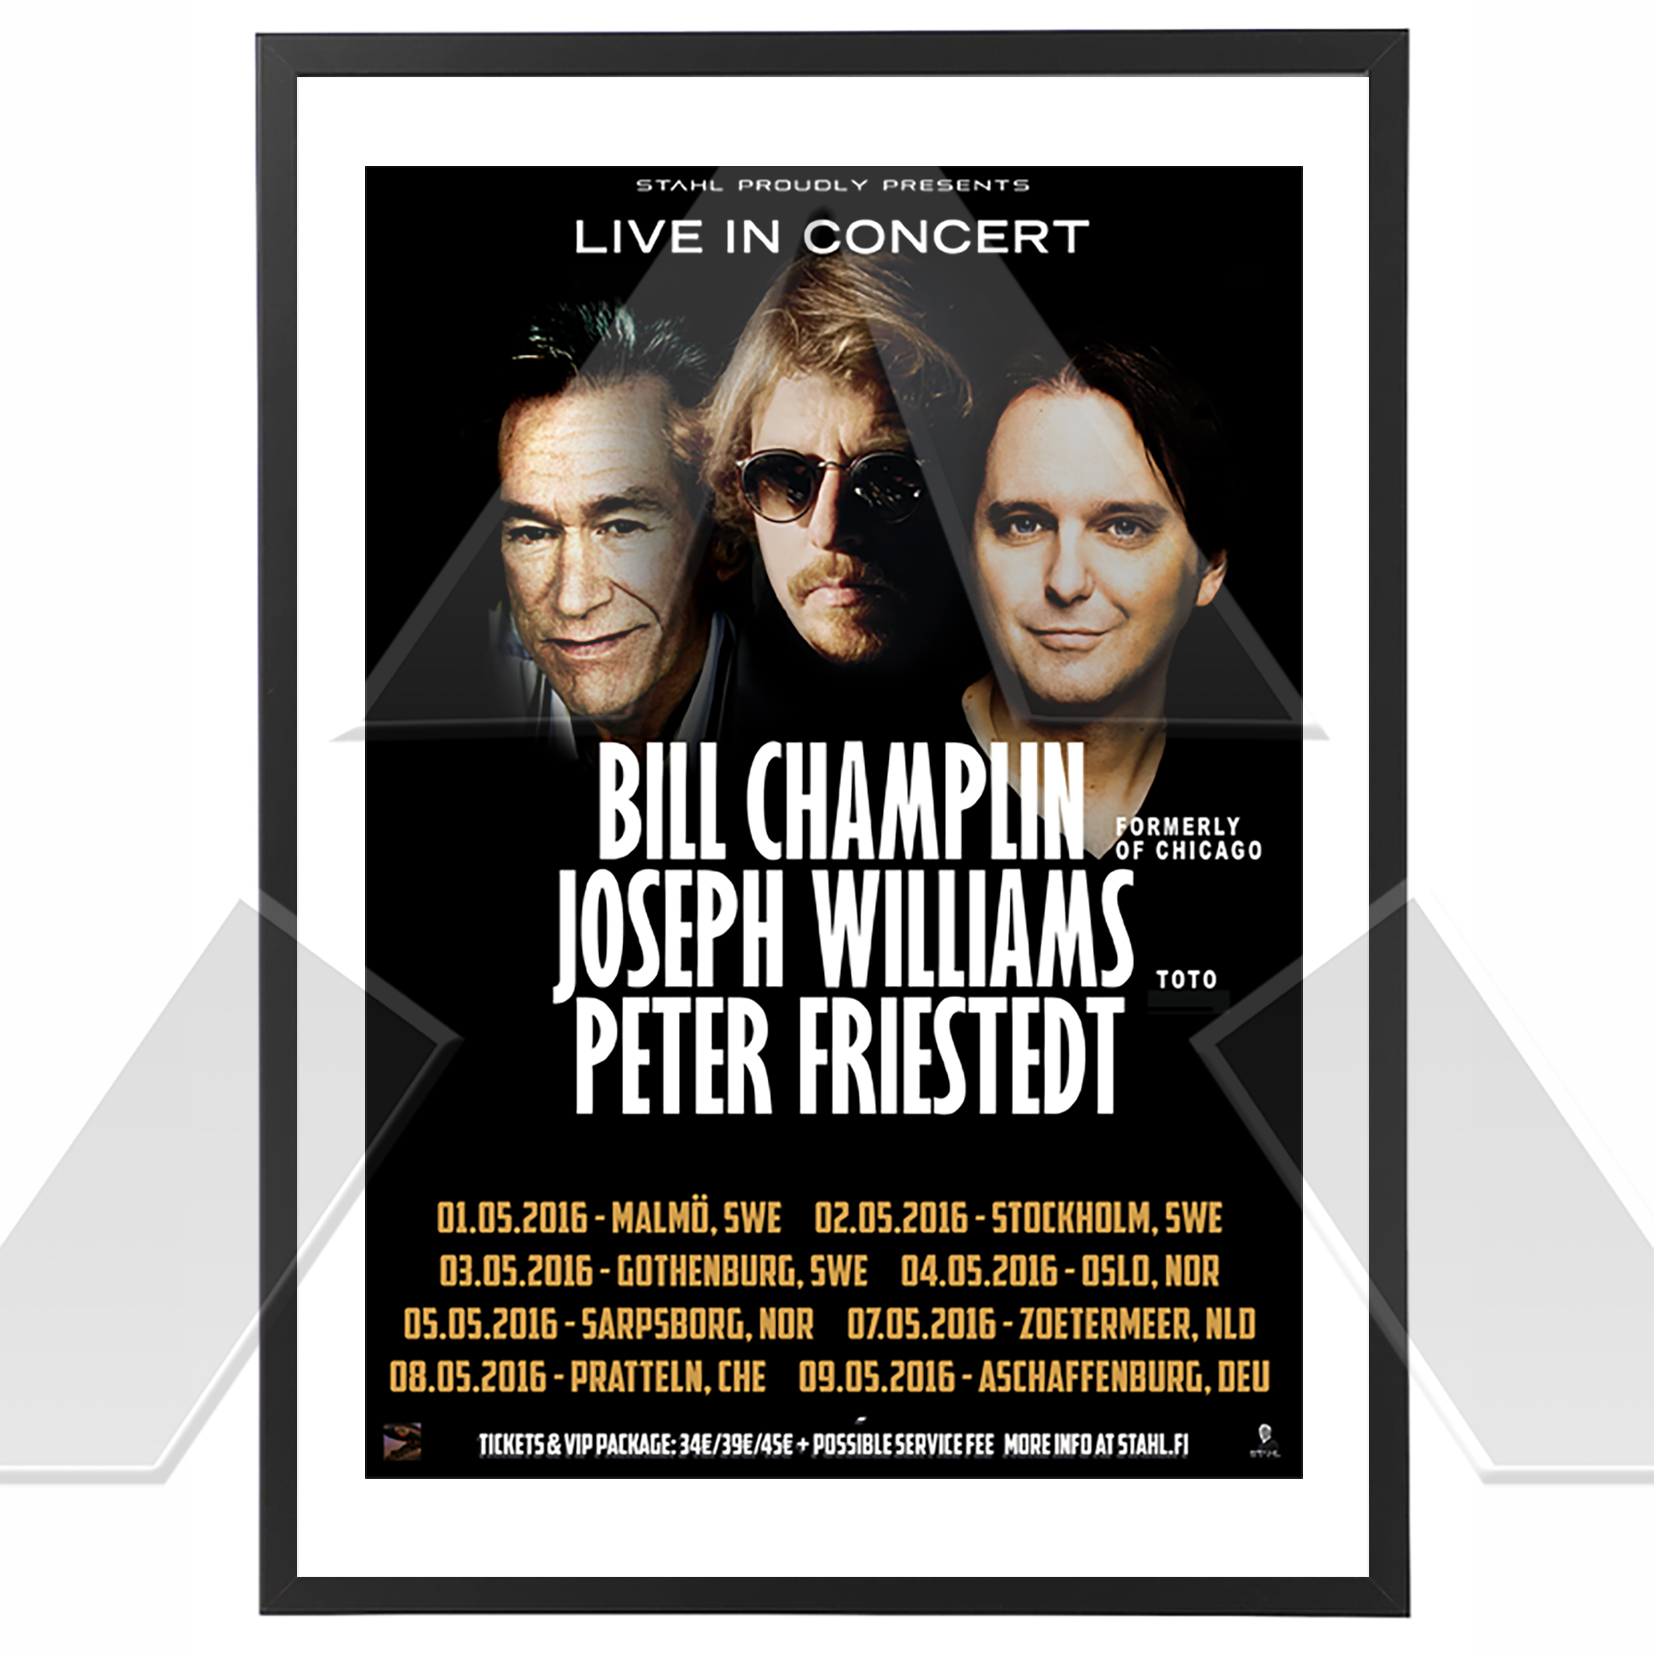 Champlin Williams Friestedt ★ Live in Concert 2016 (tour poster)